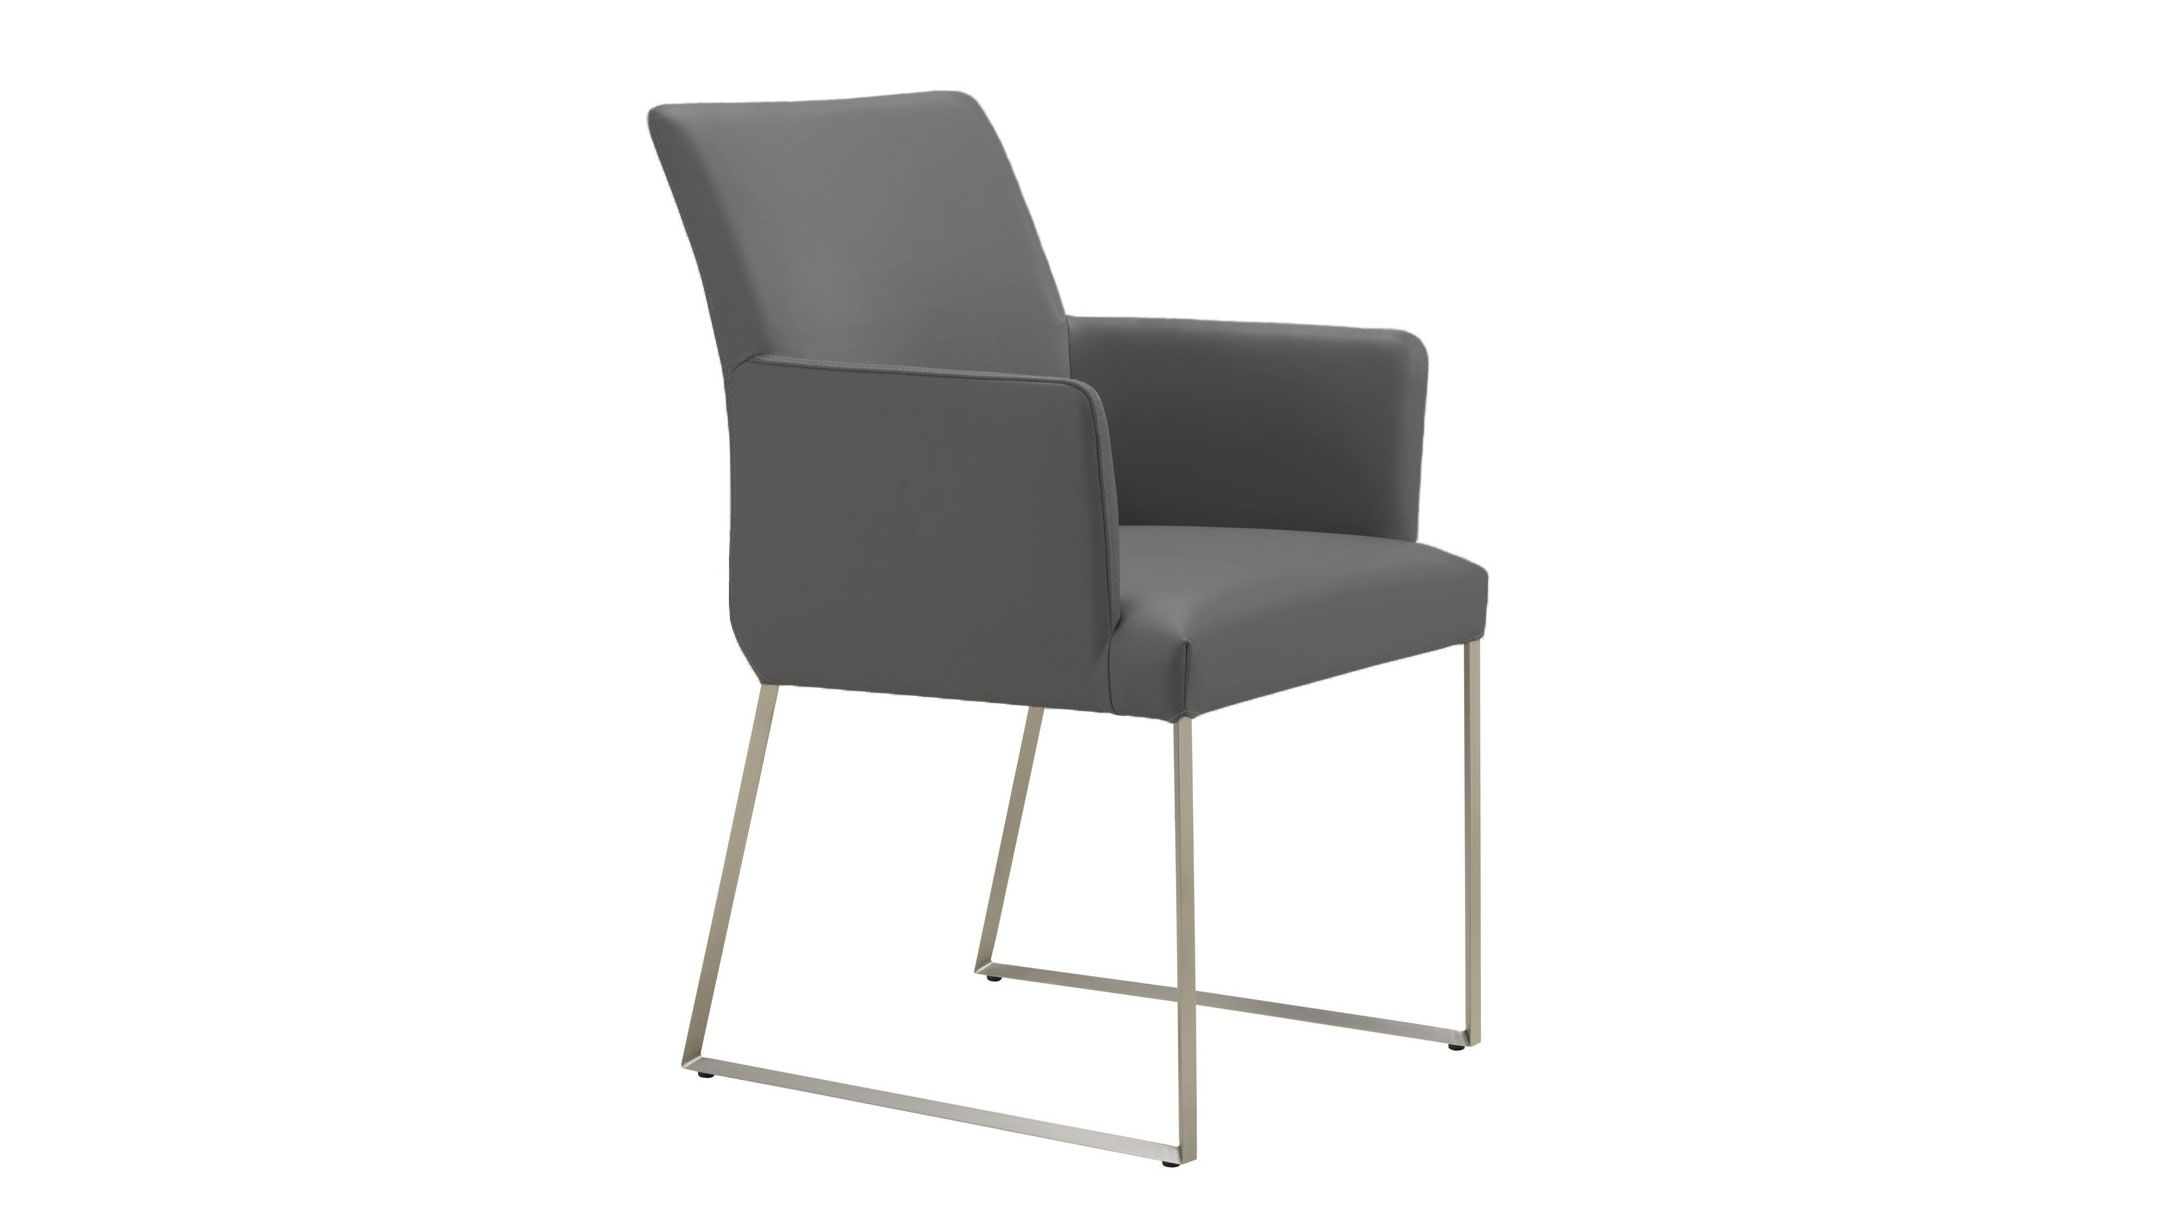 Monti Real Leather Armchair  Real Leather Dining Chairs And Fair Leather Dining Room Chairs With Arms Design Ideas